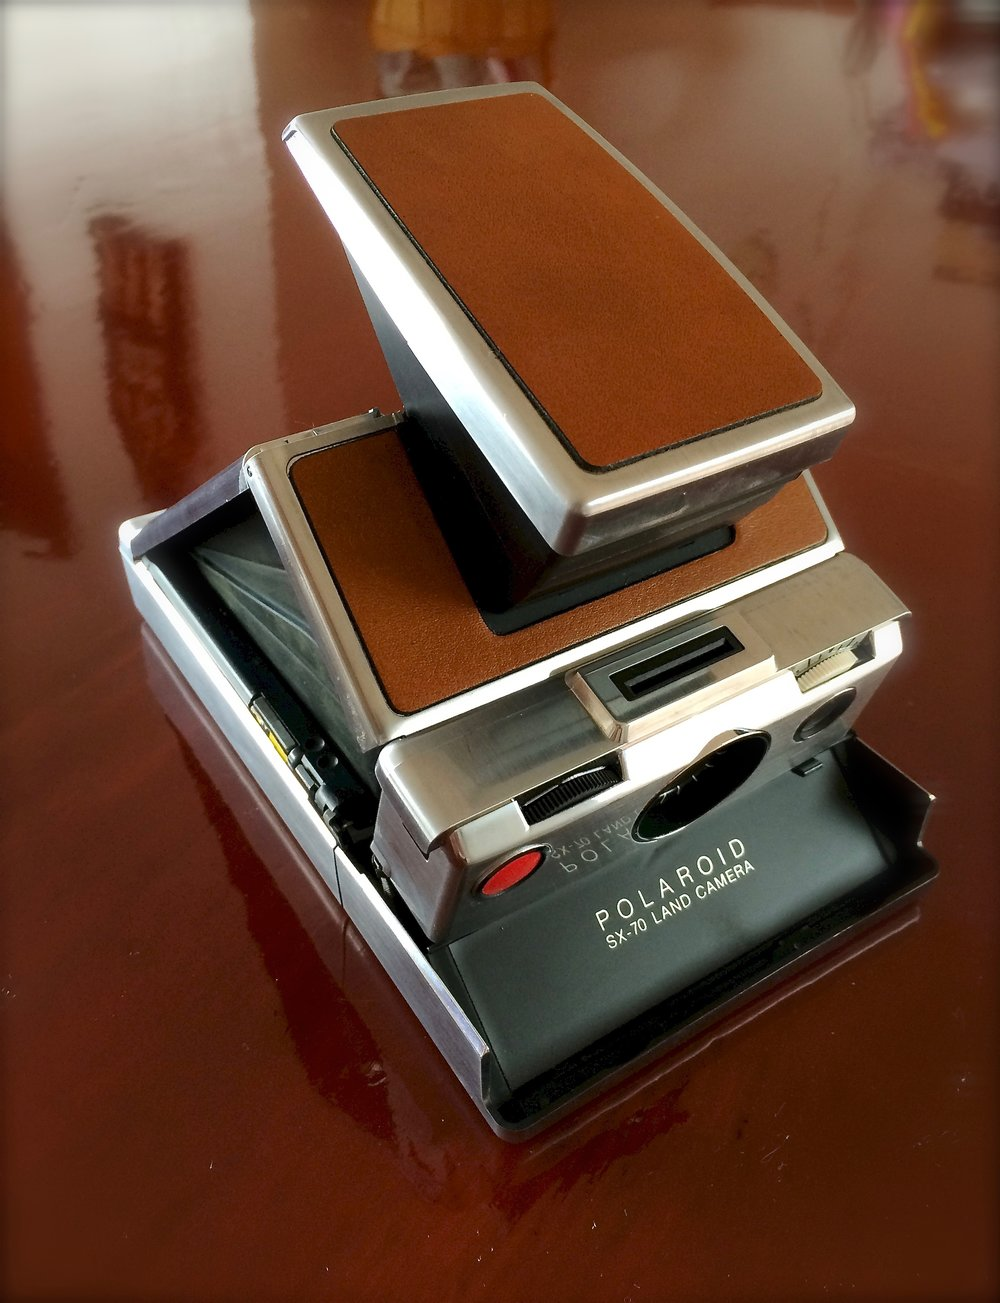 The Polaroid SX-70 Land Camera